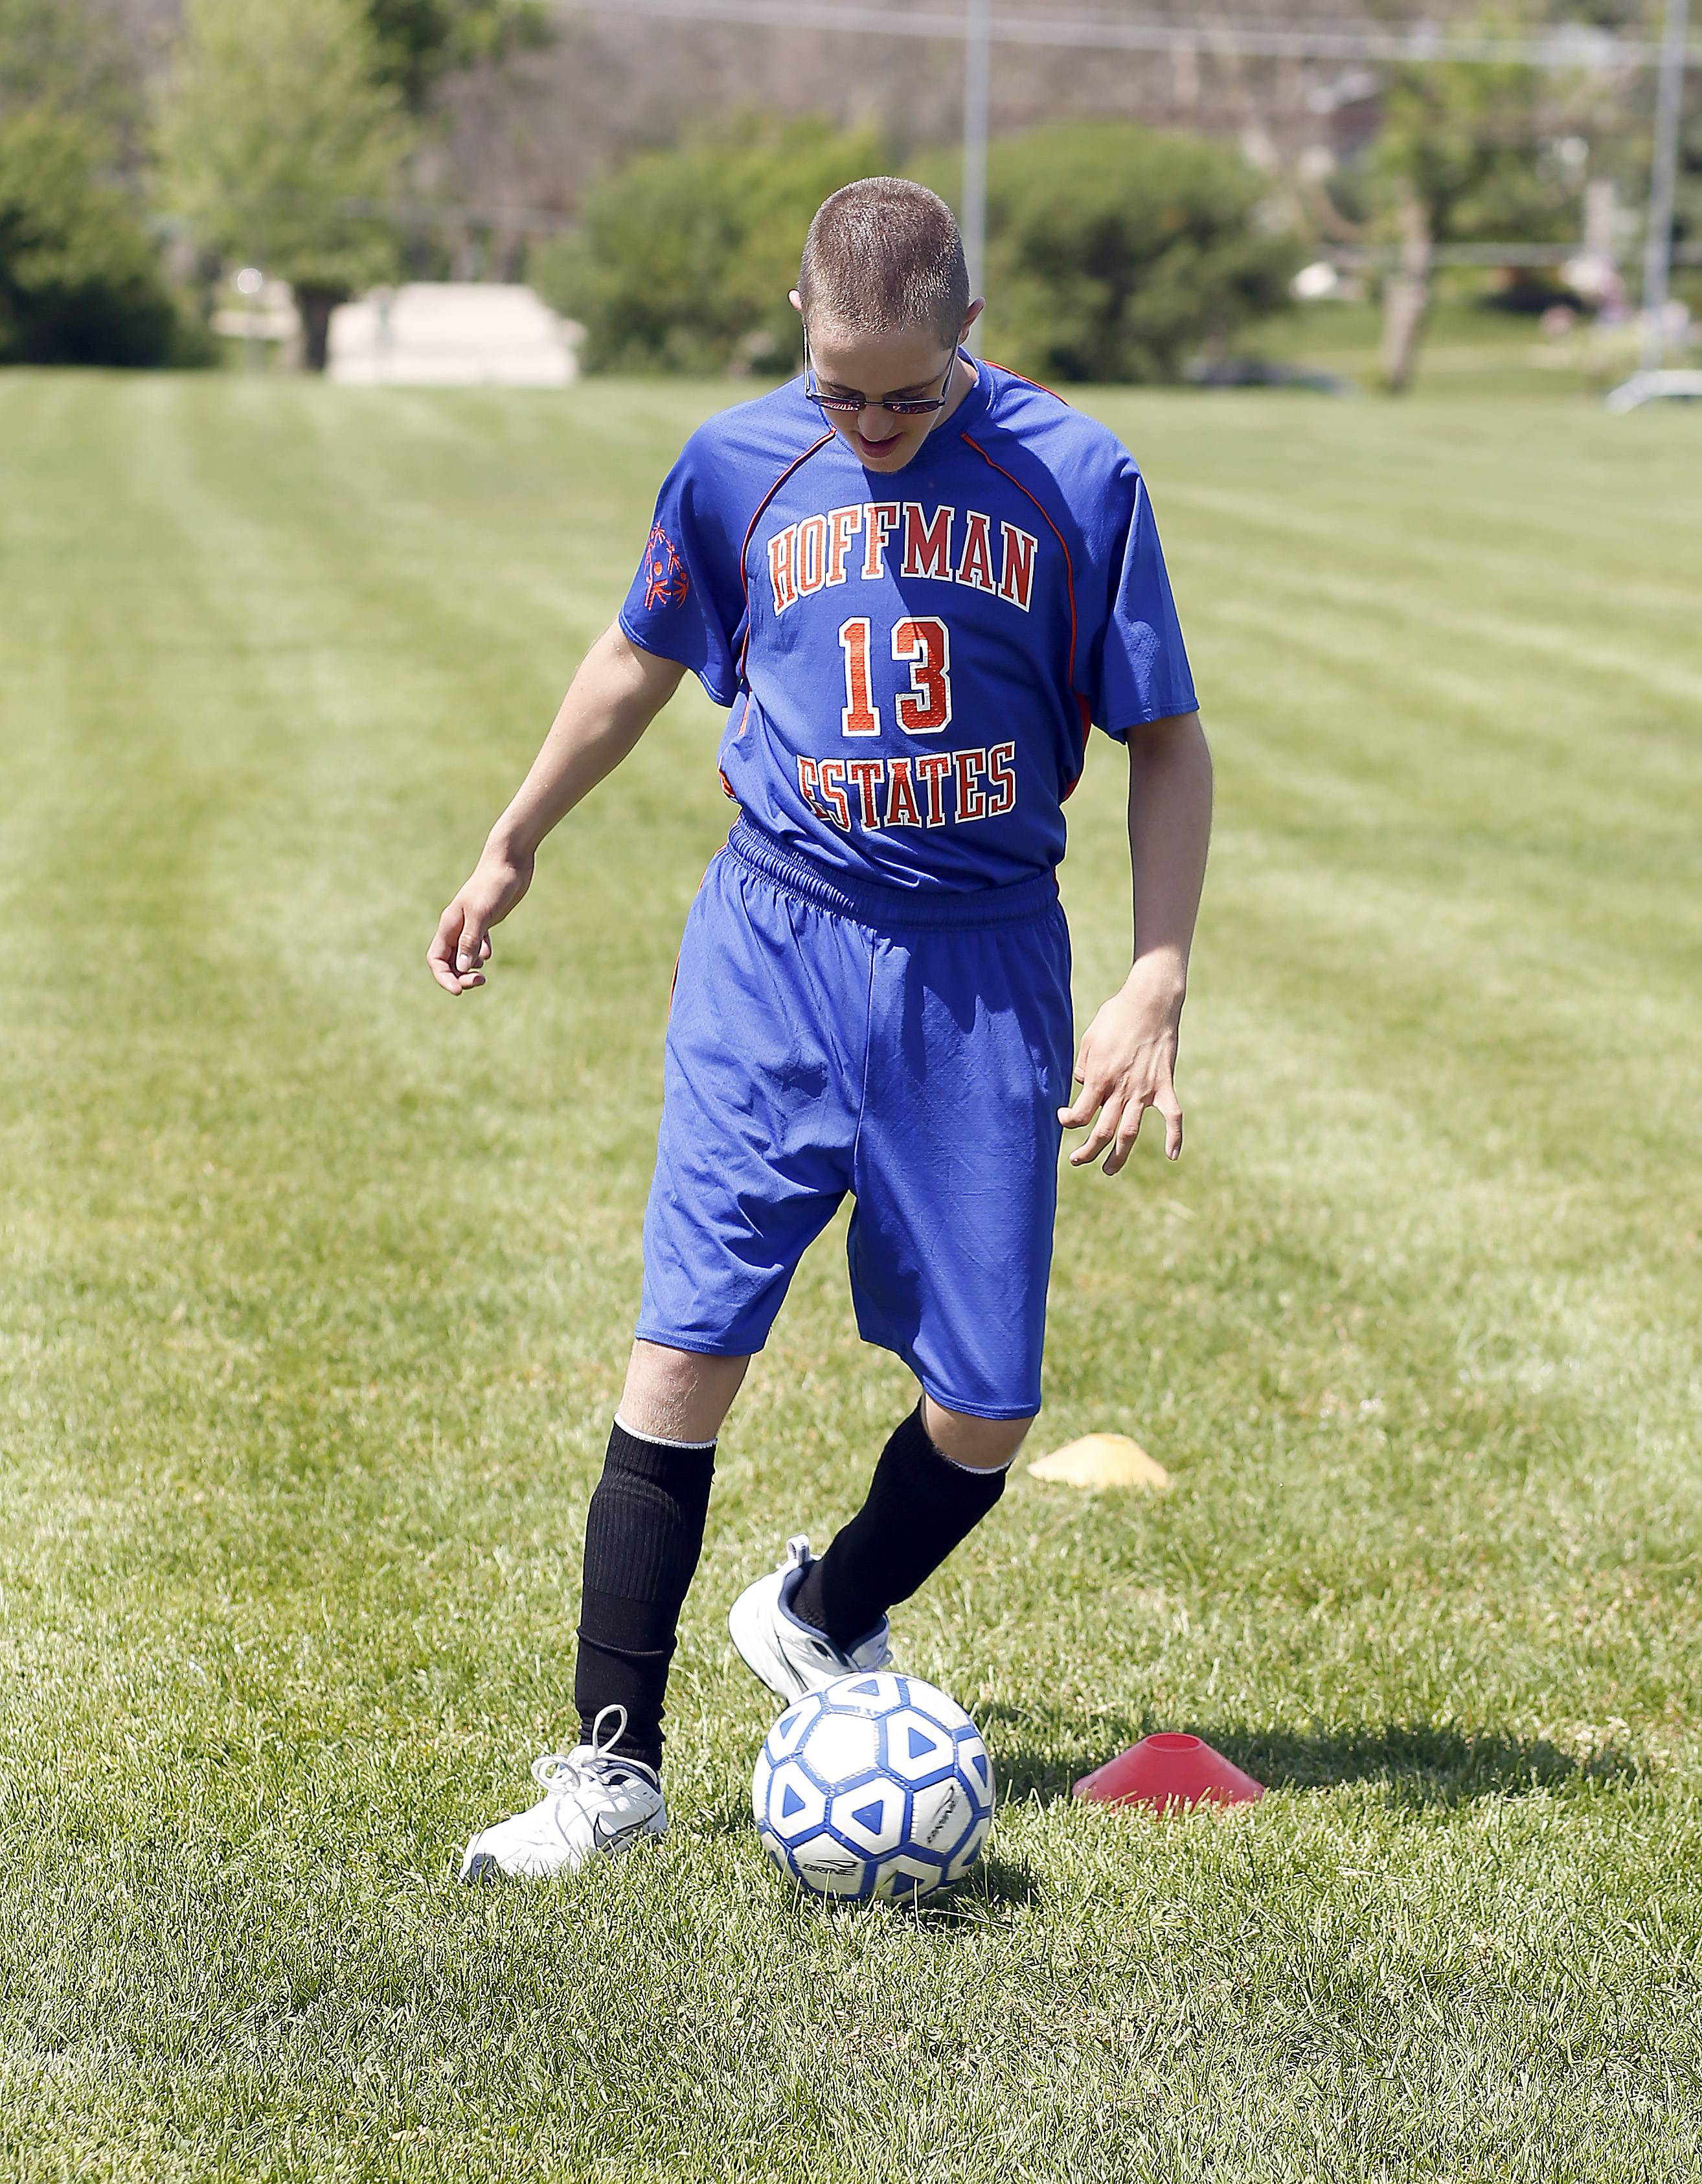 Matthew Sommerer, 17, is one of four Hoffman Estates High School students who earned a spot on the Team Illinois soccer team that will compete this month at the Special Olympics 2014 USA Games in New Jersey. Matthew has been playing soccer since he was 8 years old.